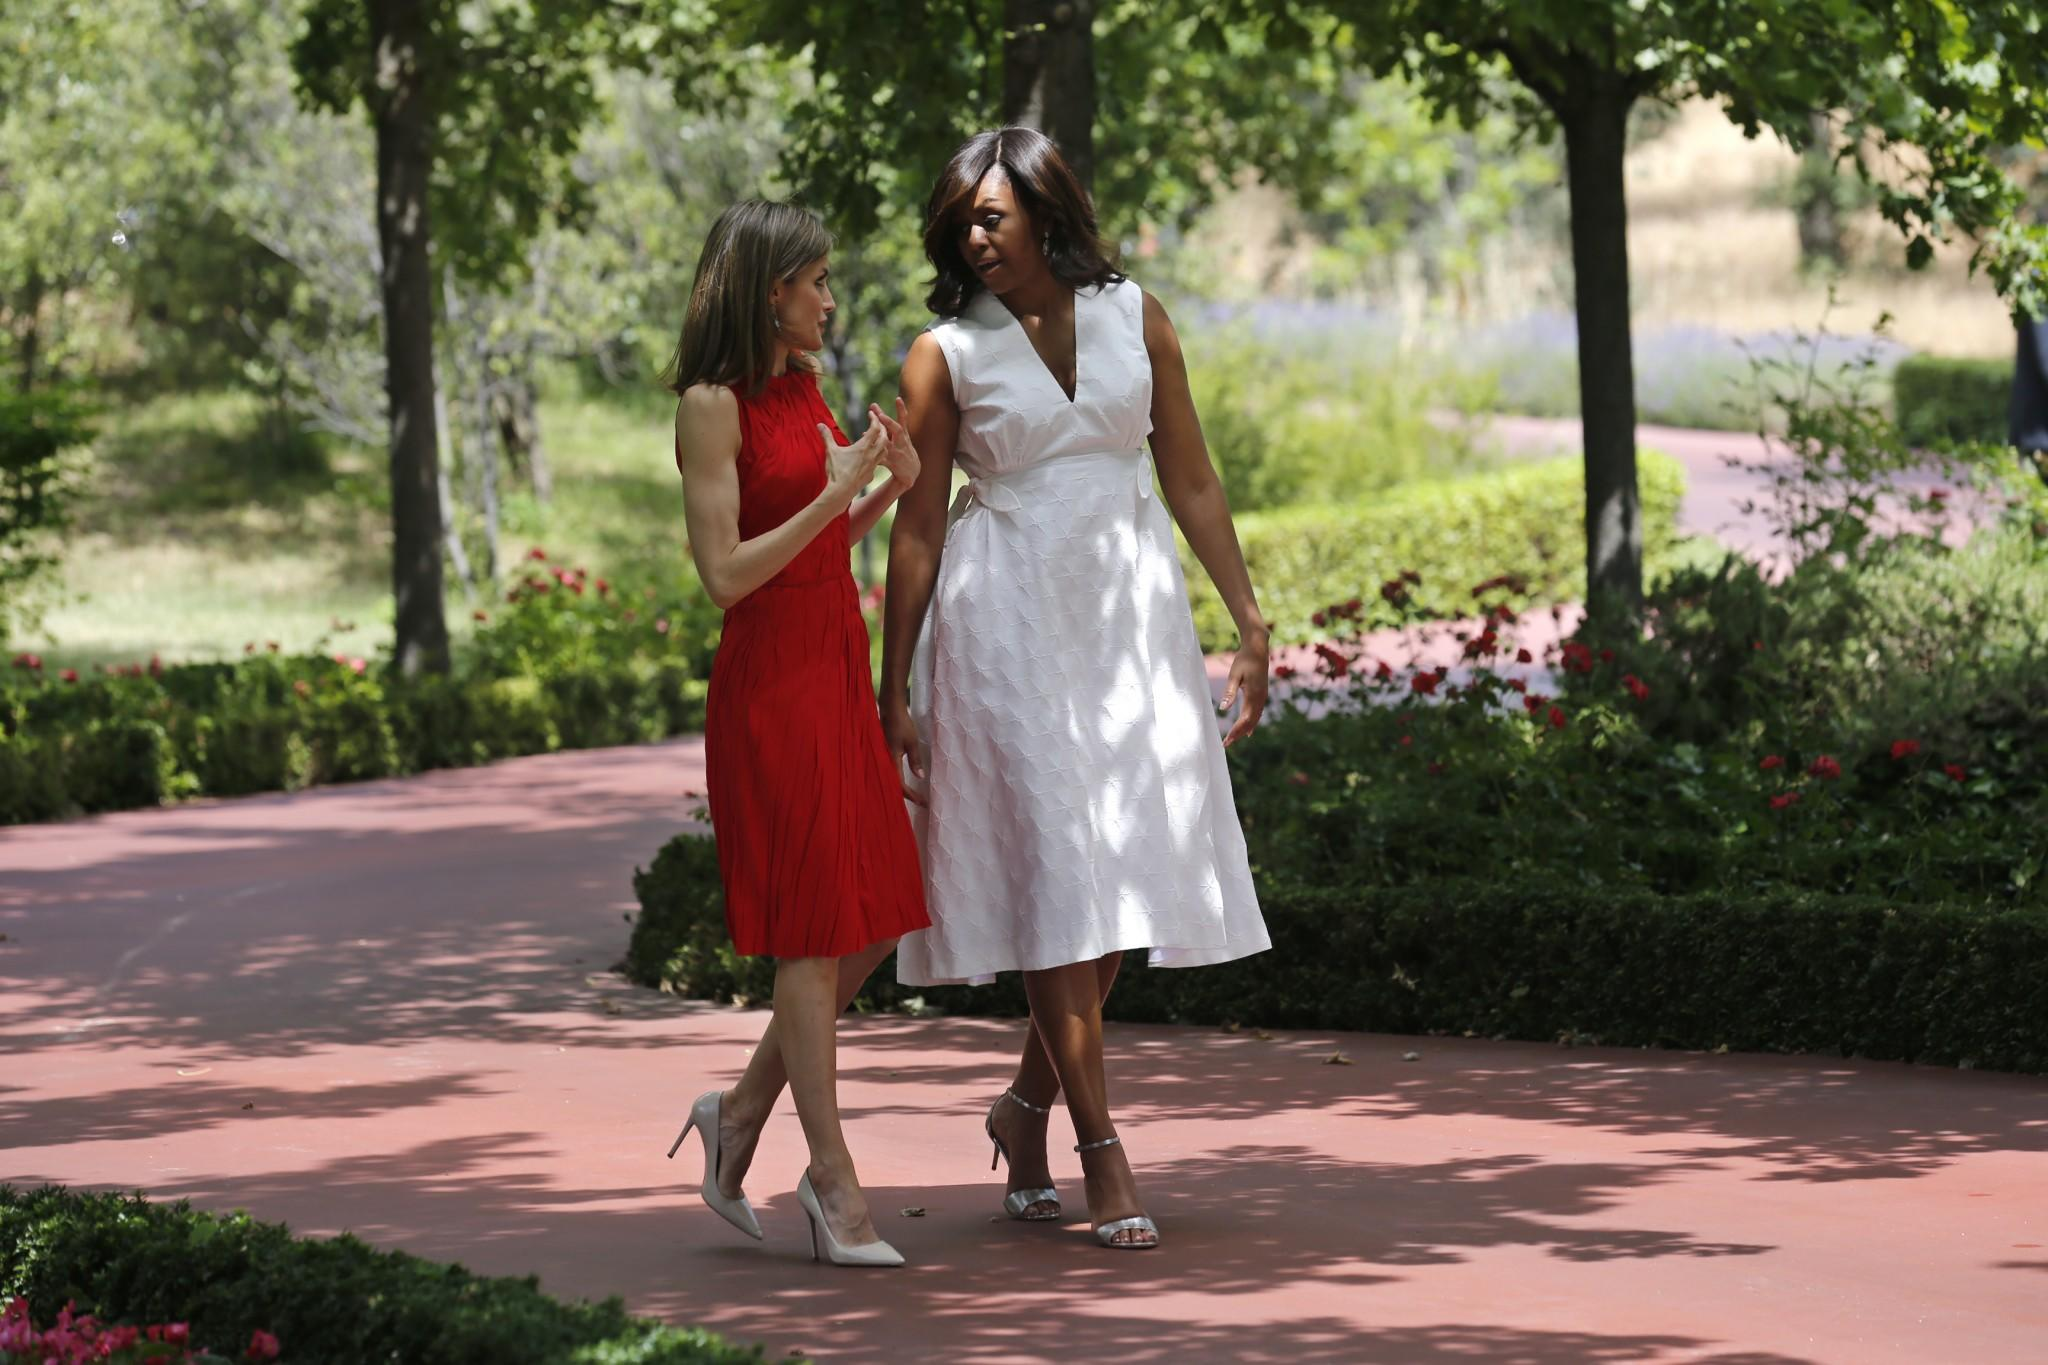 Michelle, Malia and Sasha Obama travel abroad to promote 'Let Girls Learn' initiative